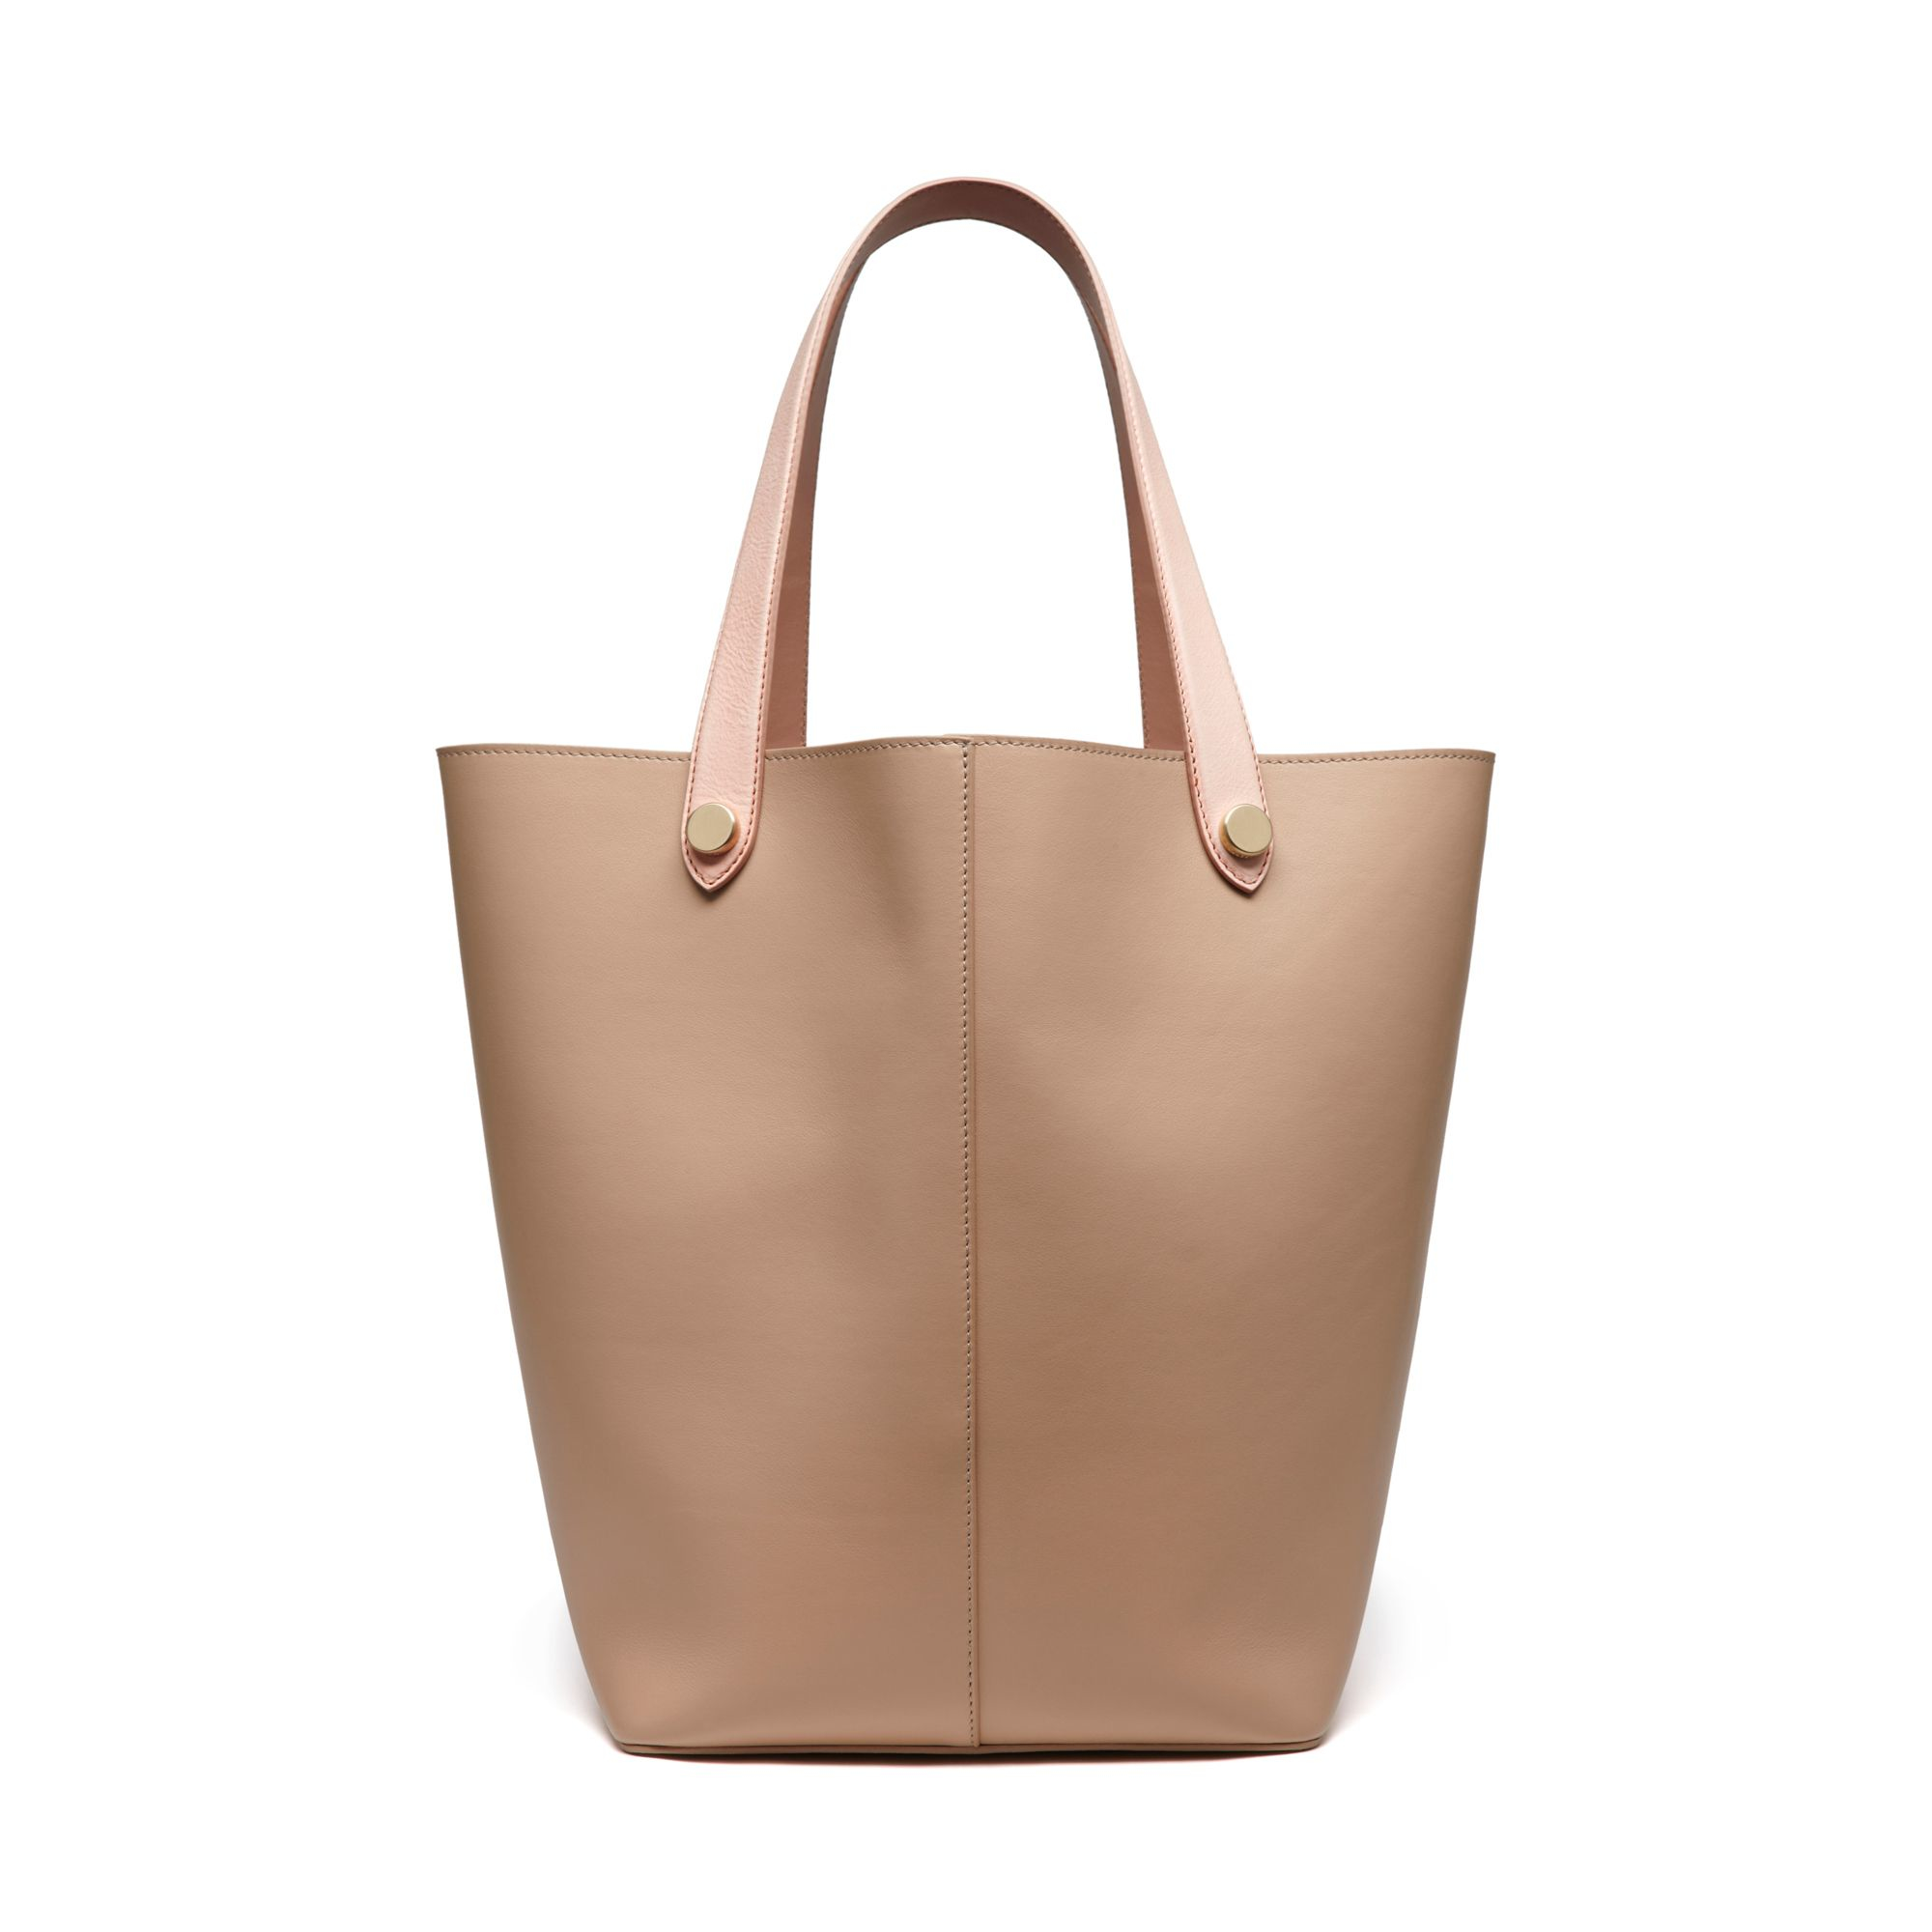 cdecebaaa0 ... switzerland lyst mulberry kite leather tote in natural 810b0 8c5a6